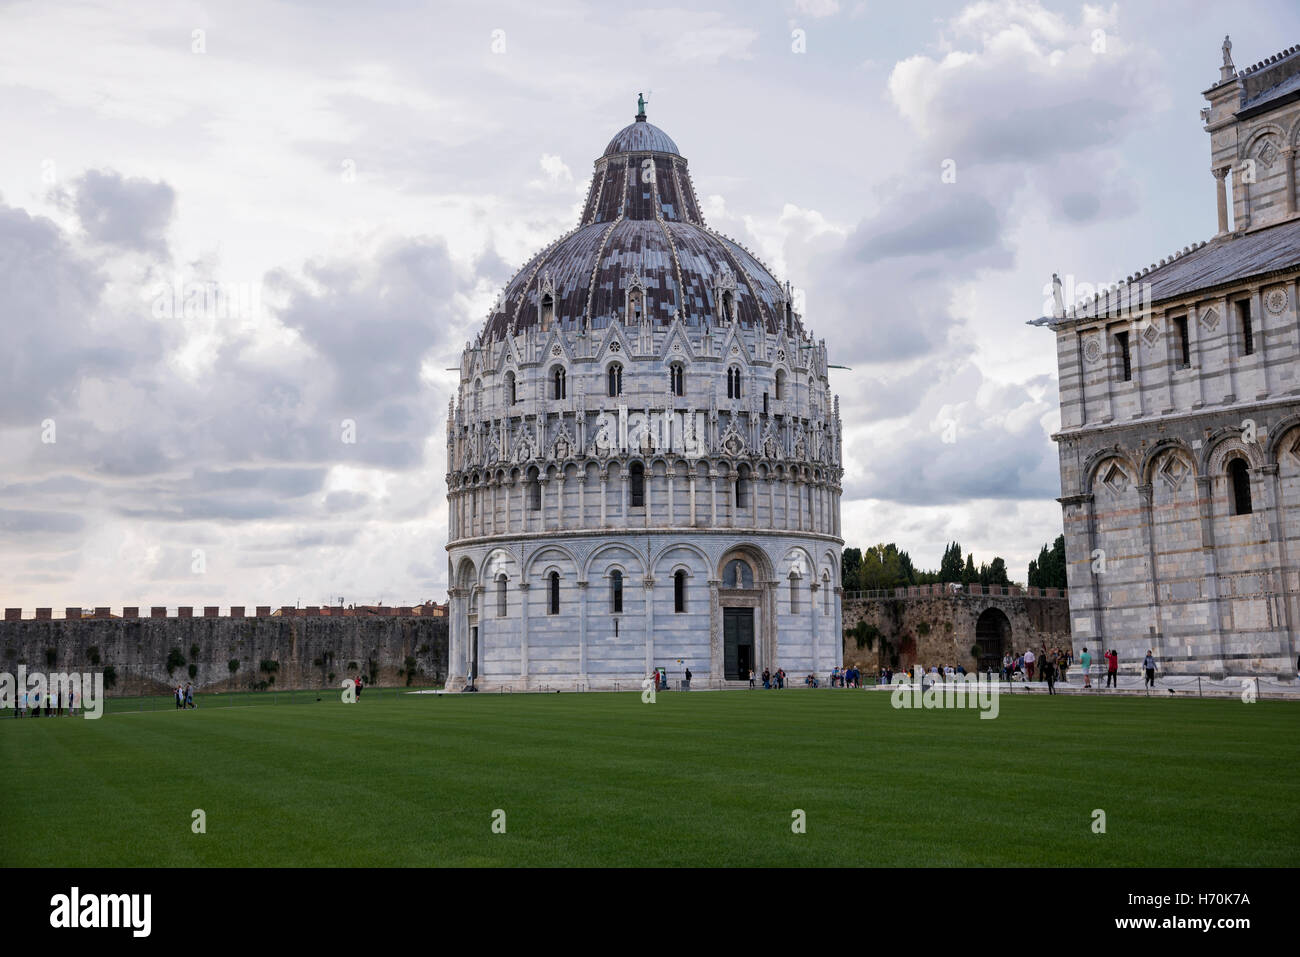 The Pisa Baptistery of St. John is a Roman Catholic ecclesiastical building in Pisa, city in Tuscany, Central Italy - Stock Image